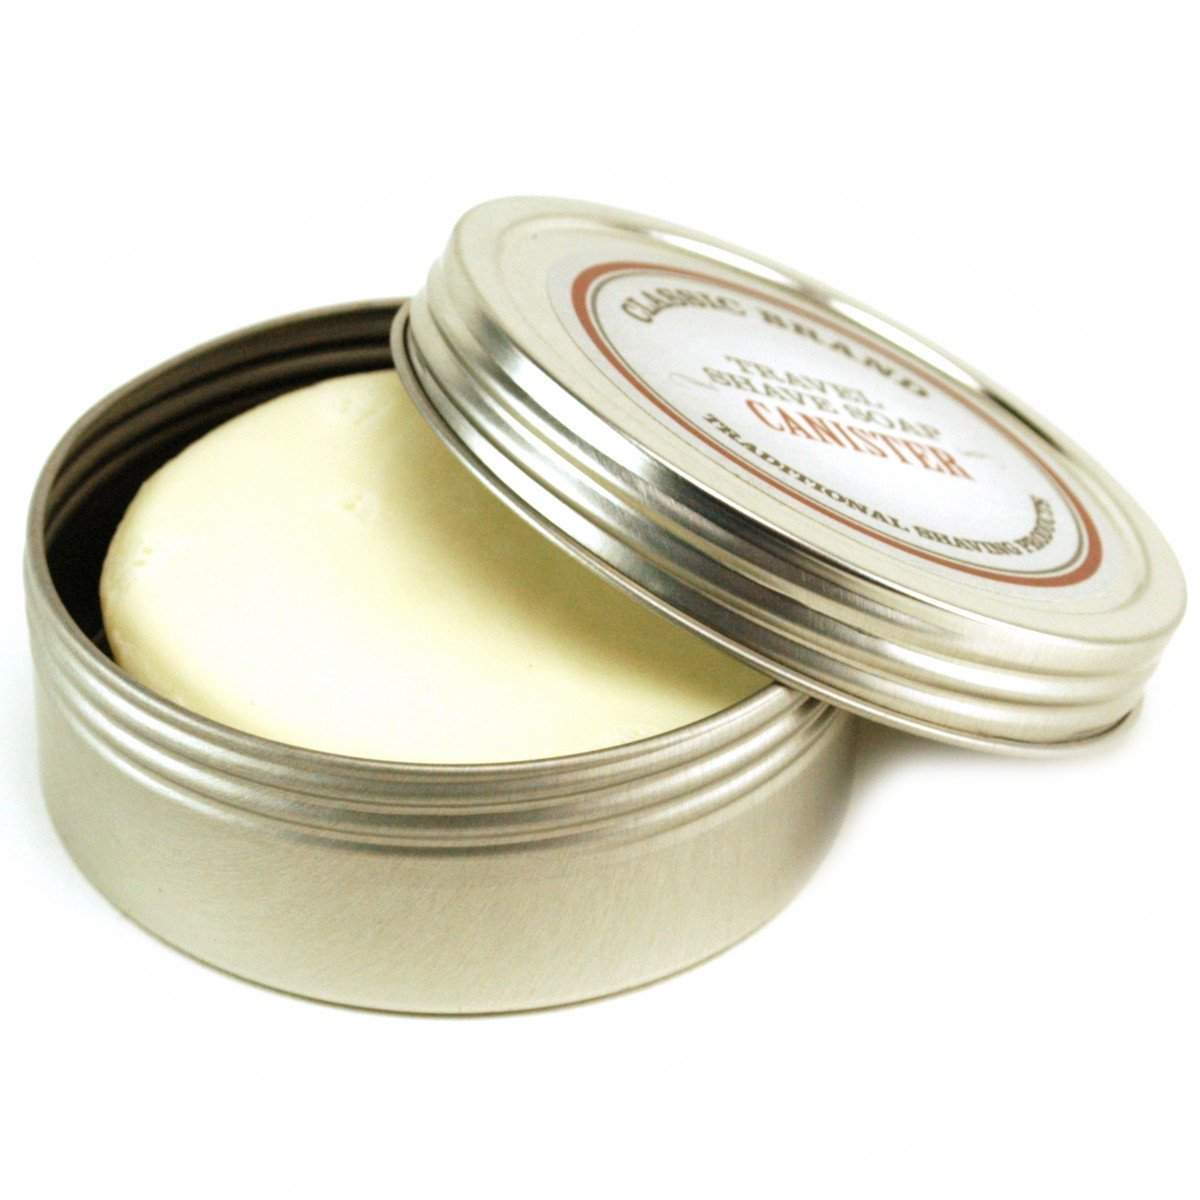 Classic Brand Travel Shave Soap Canister